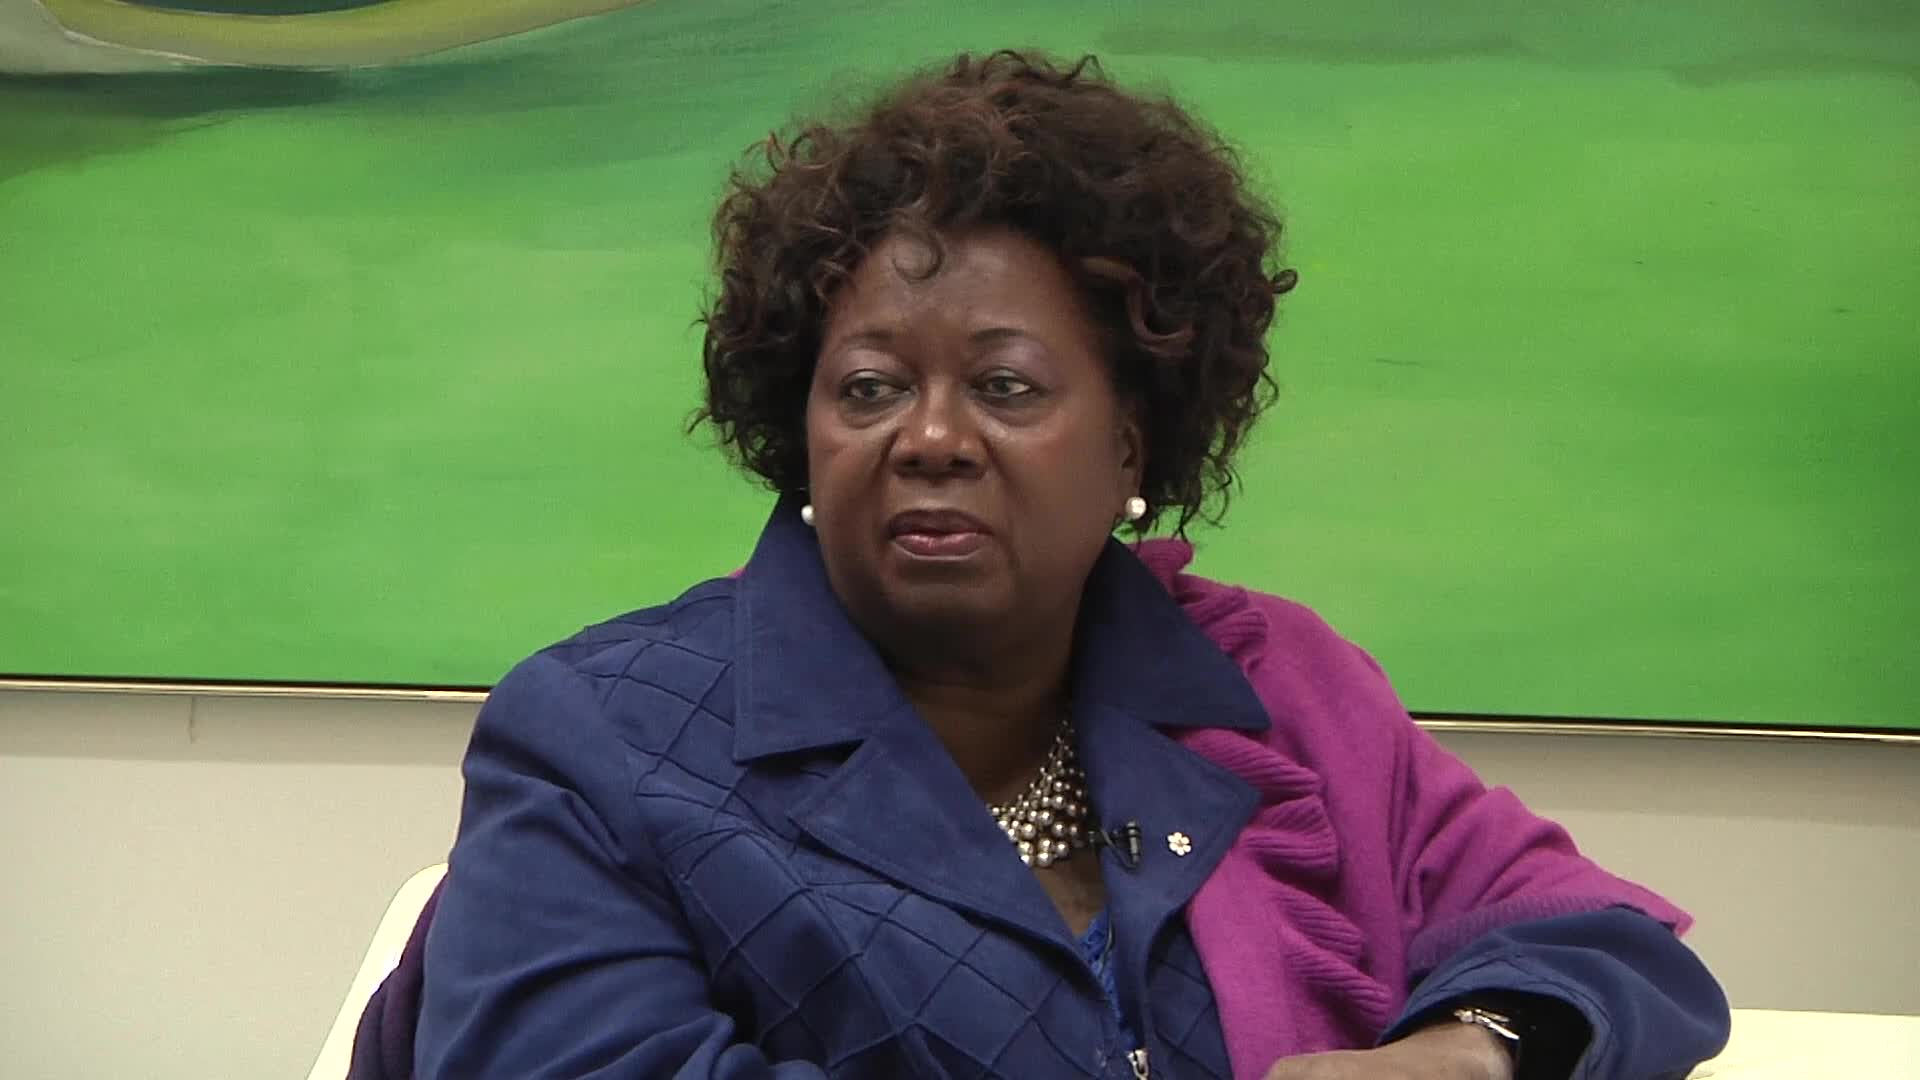 Jean Augustine interview: Buttons reflect Jean's passions